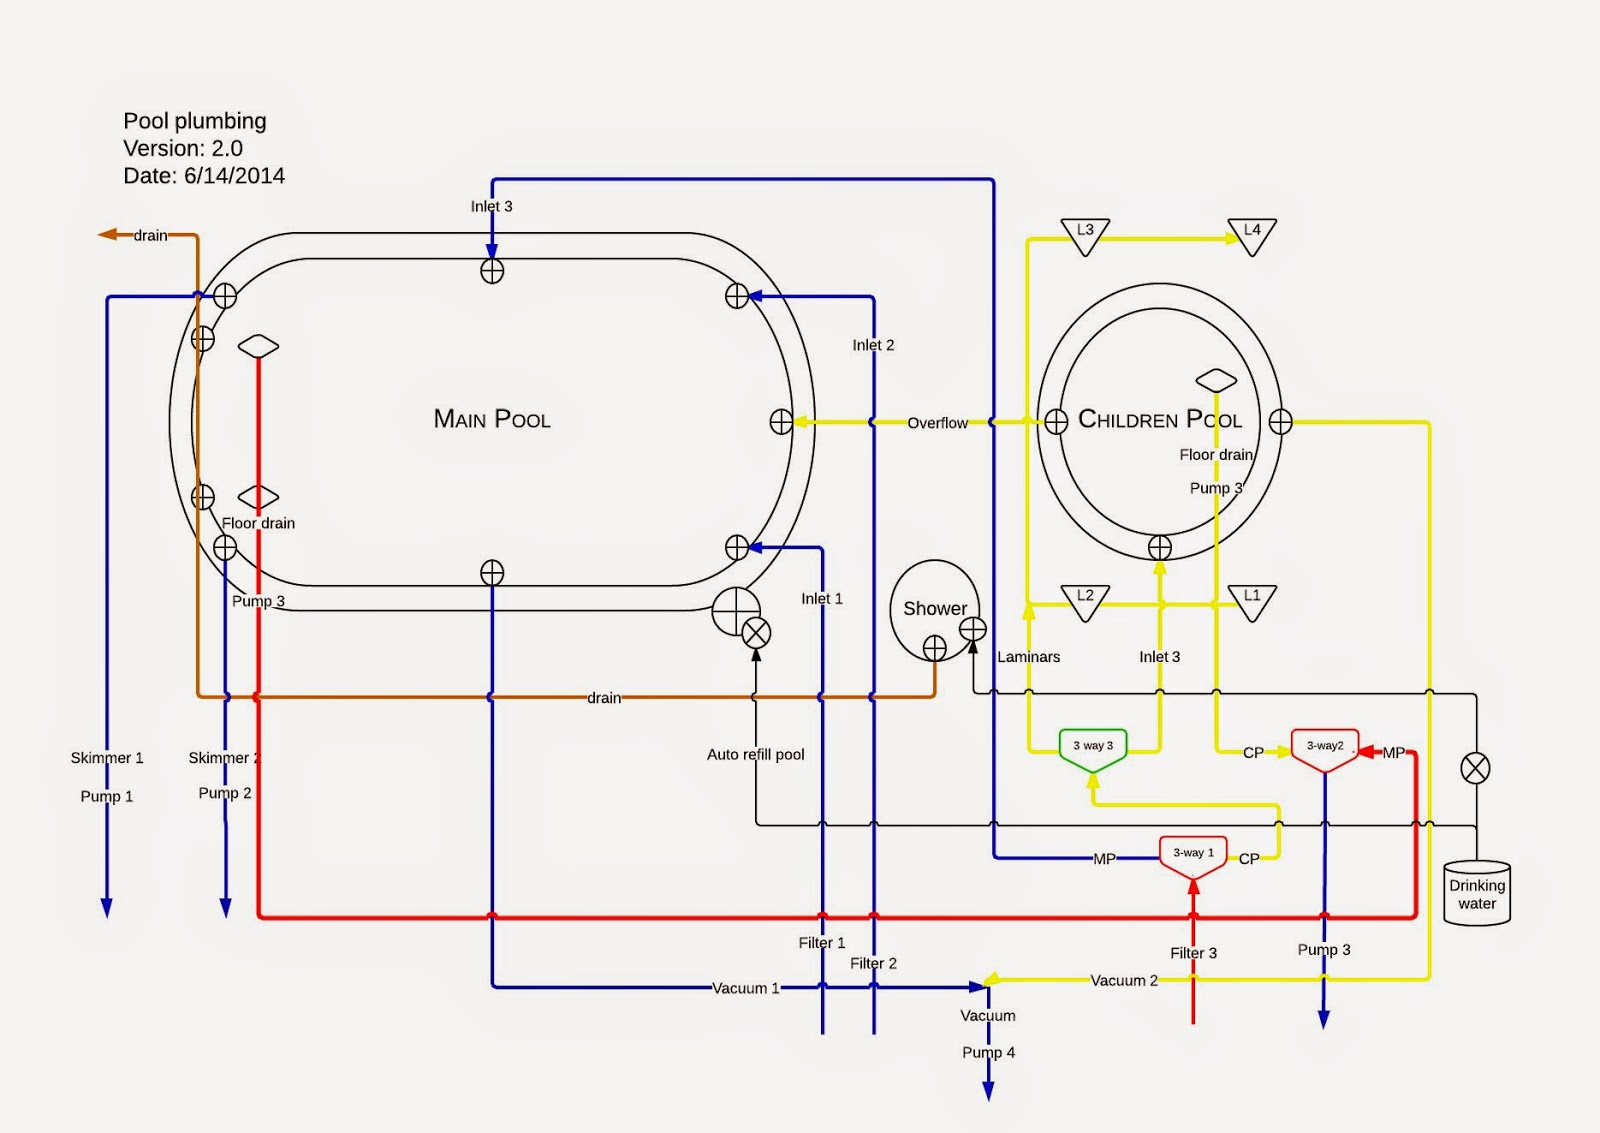 medium resolution of images of plumbing diagram for spa pool